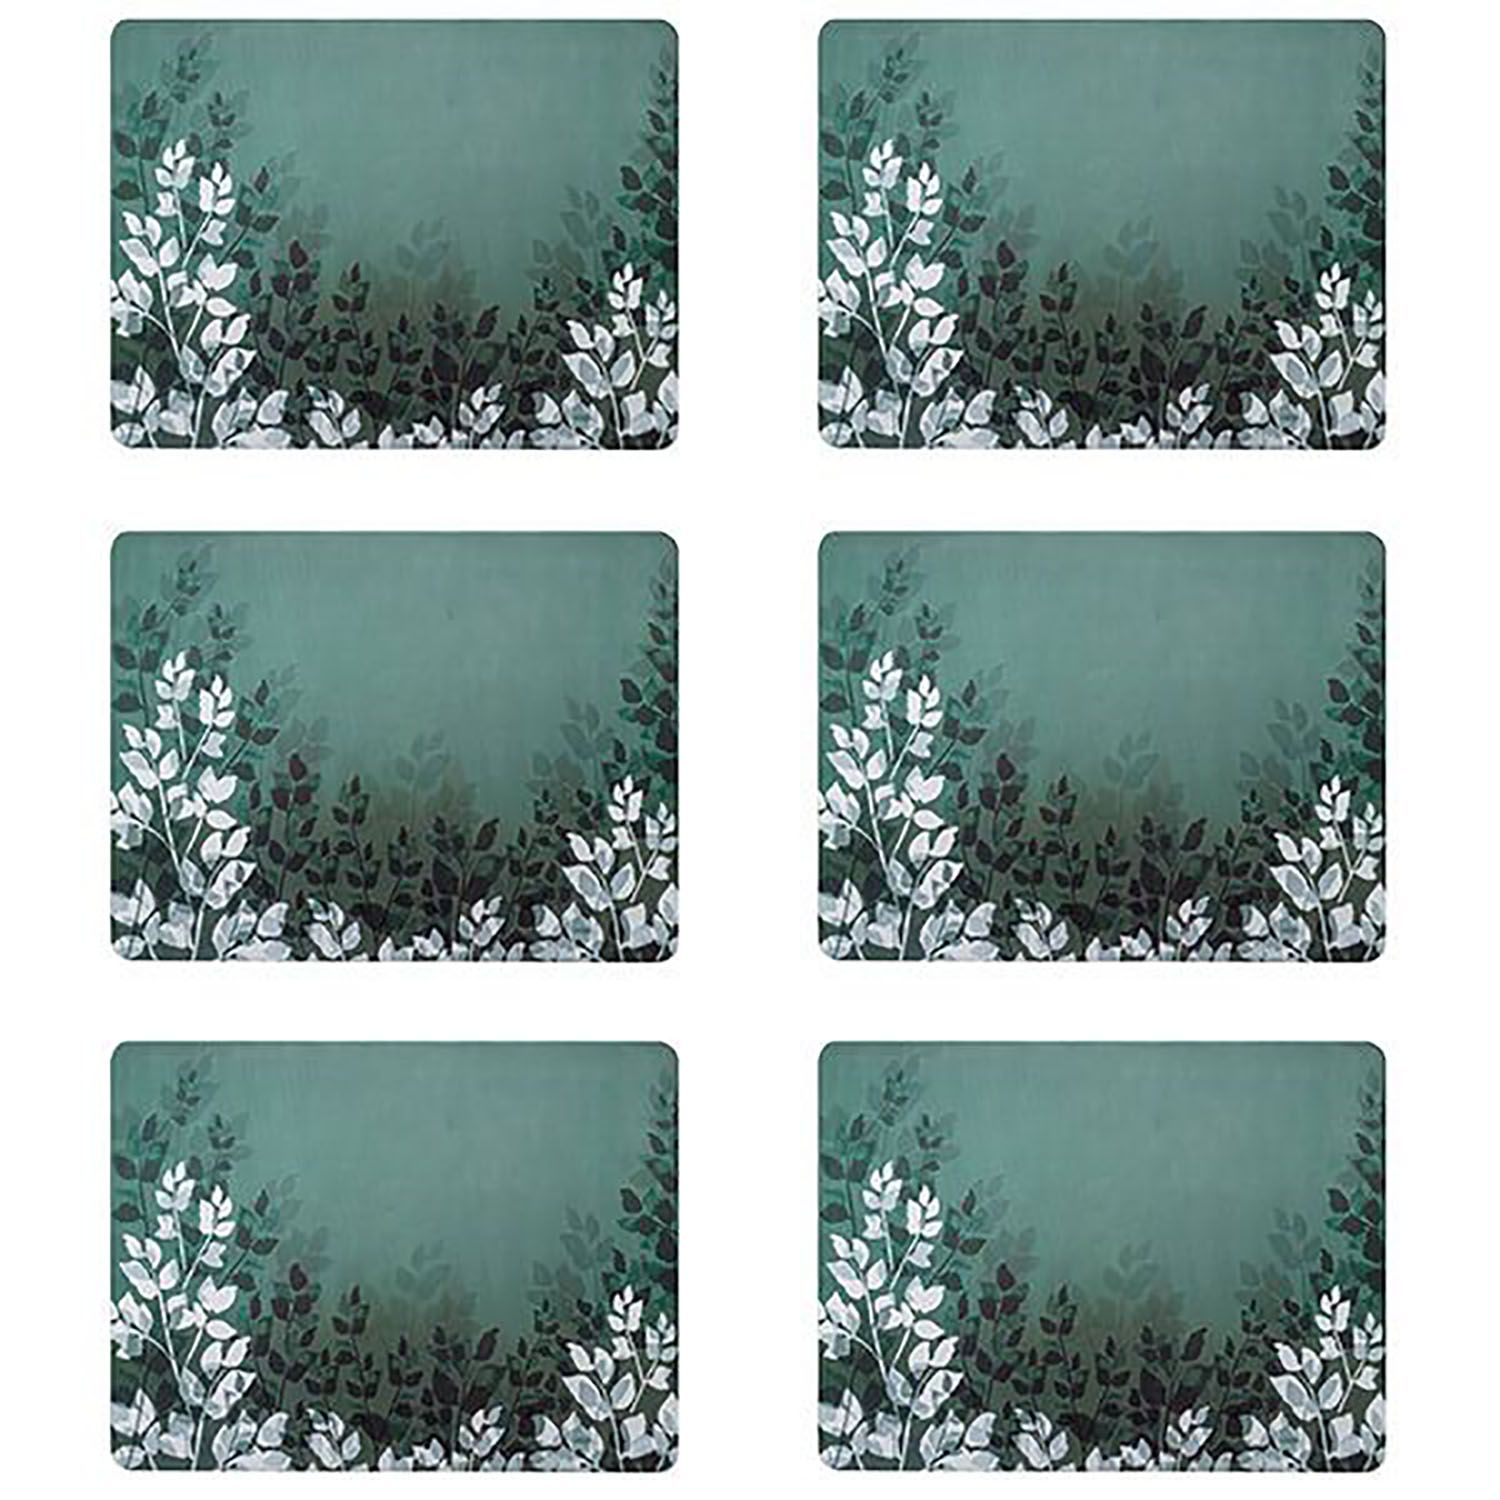 Denby Colours Set of 6 Placemats - Green Foliage